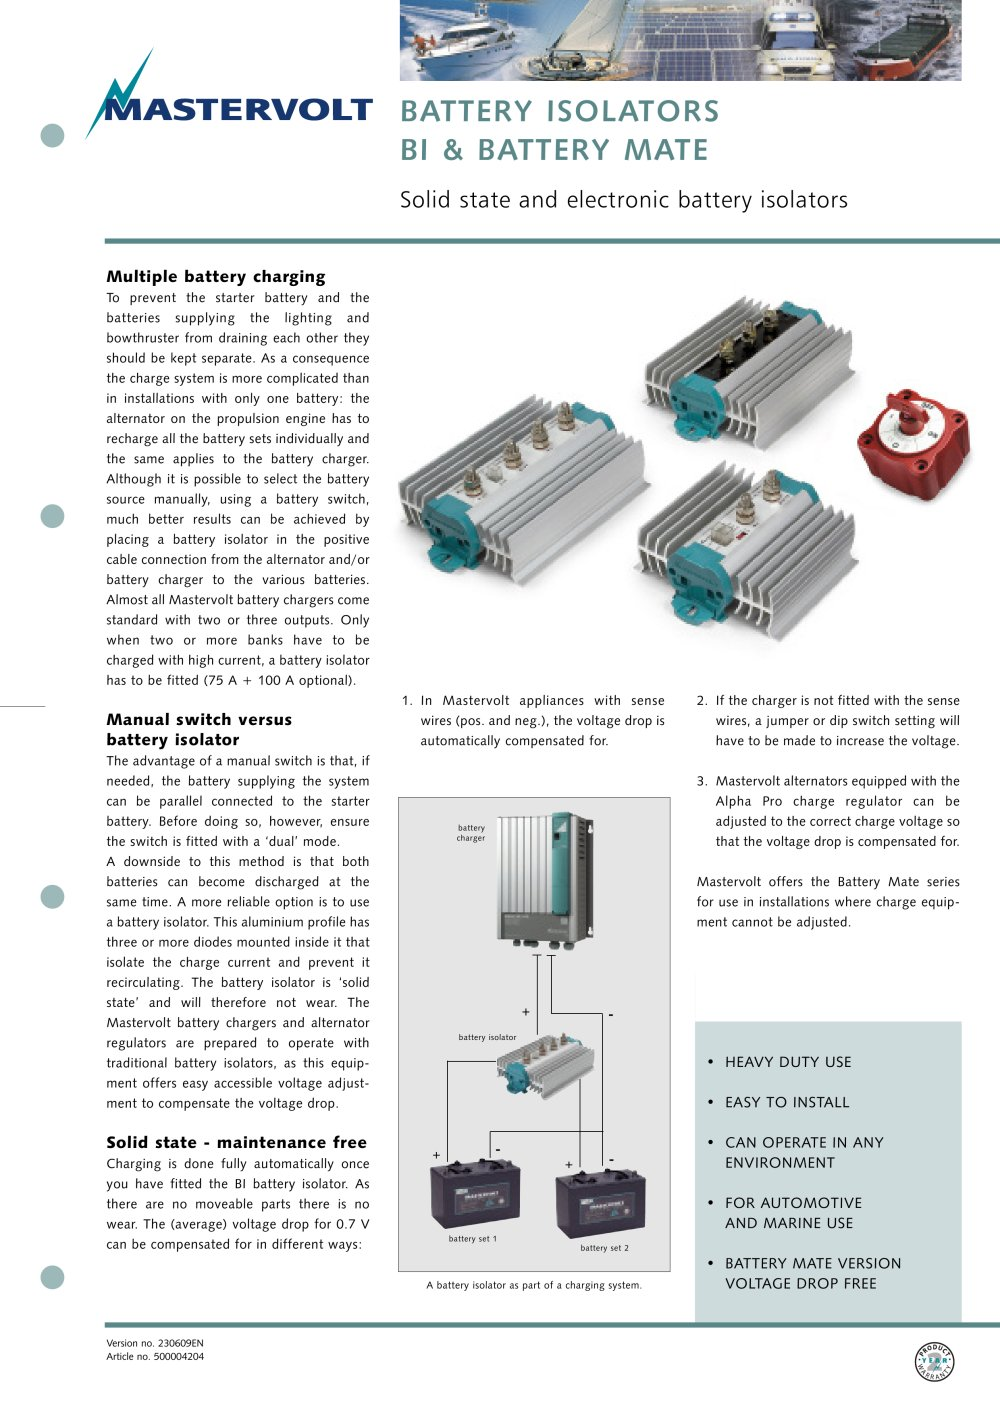 BI Battery Isolators - 1 / 2 Pages